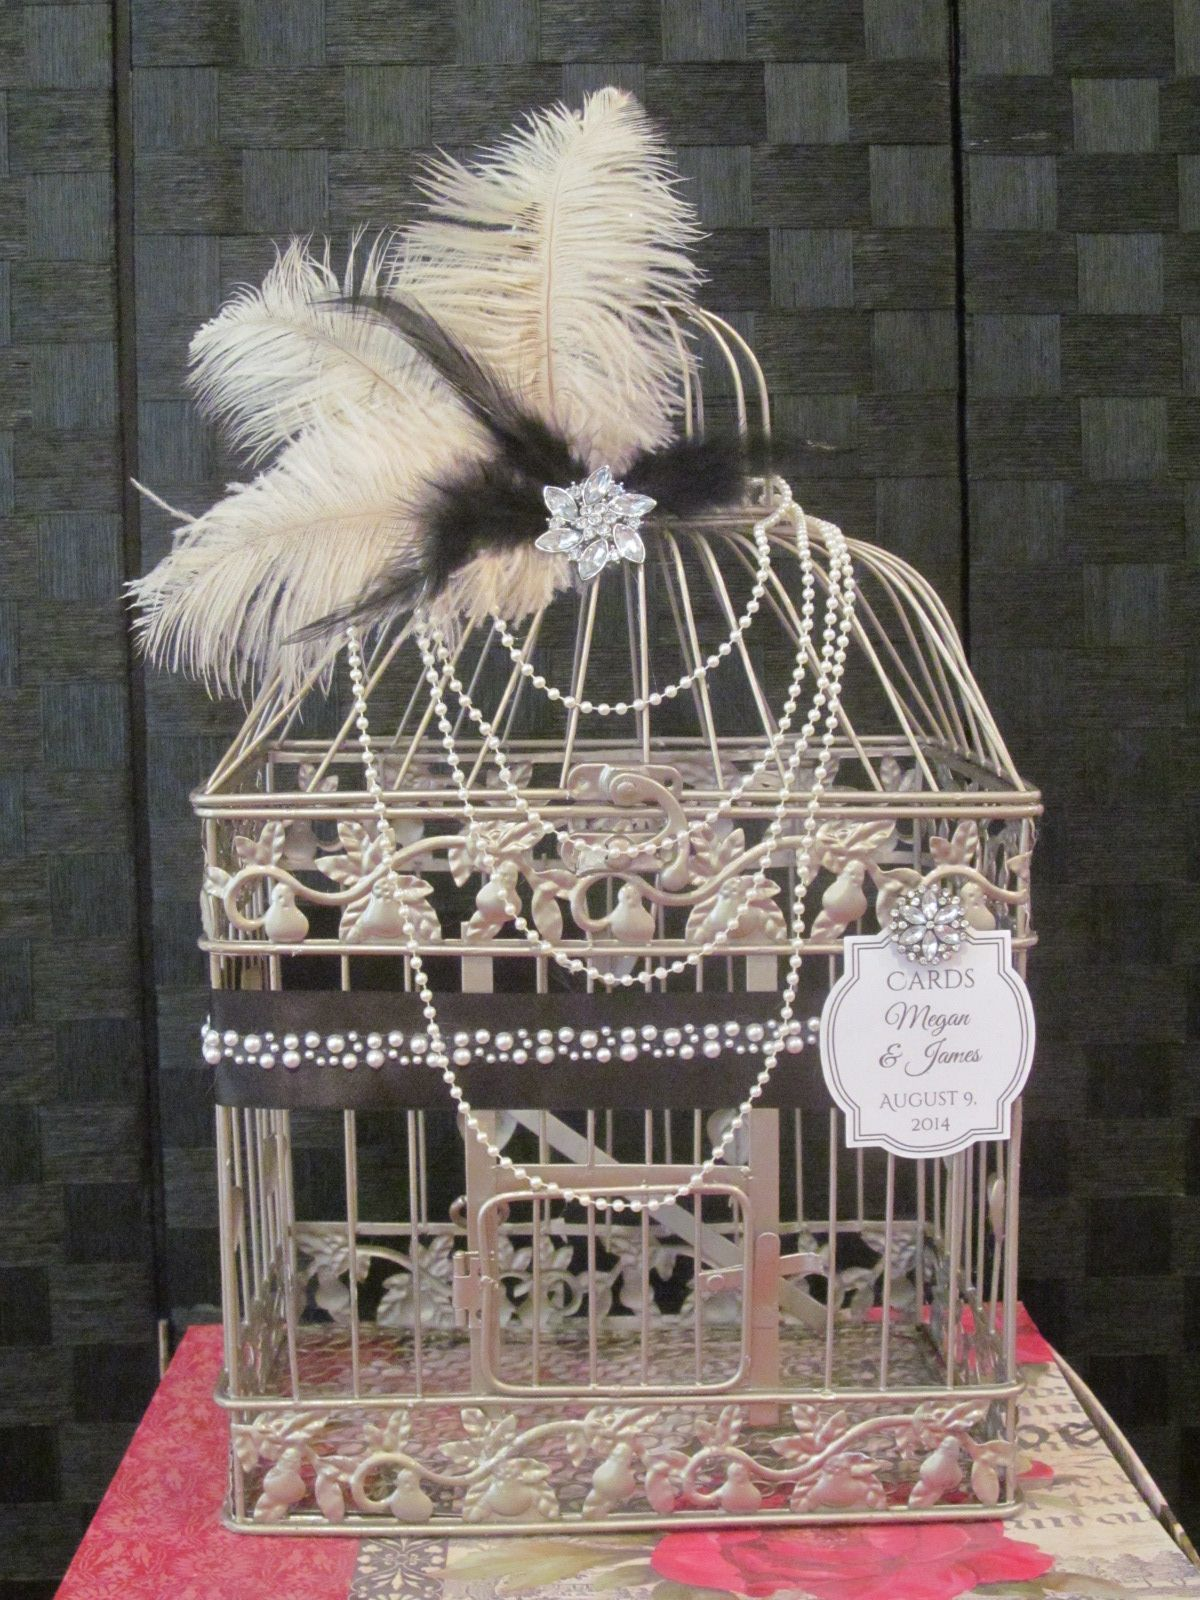 1920's themed wedding decorations november 2018 Great Gatsby Wedding Card Holder with Pearls and Bling Art Deco